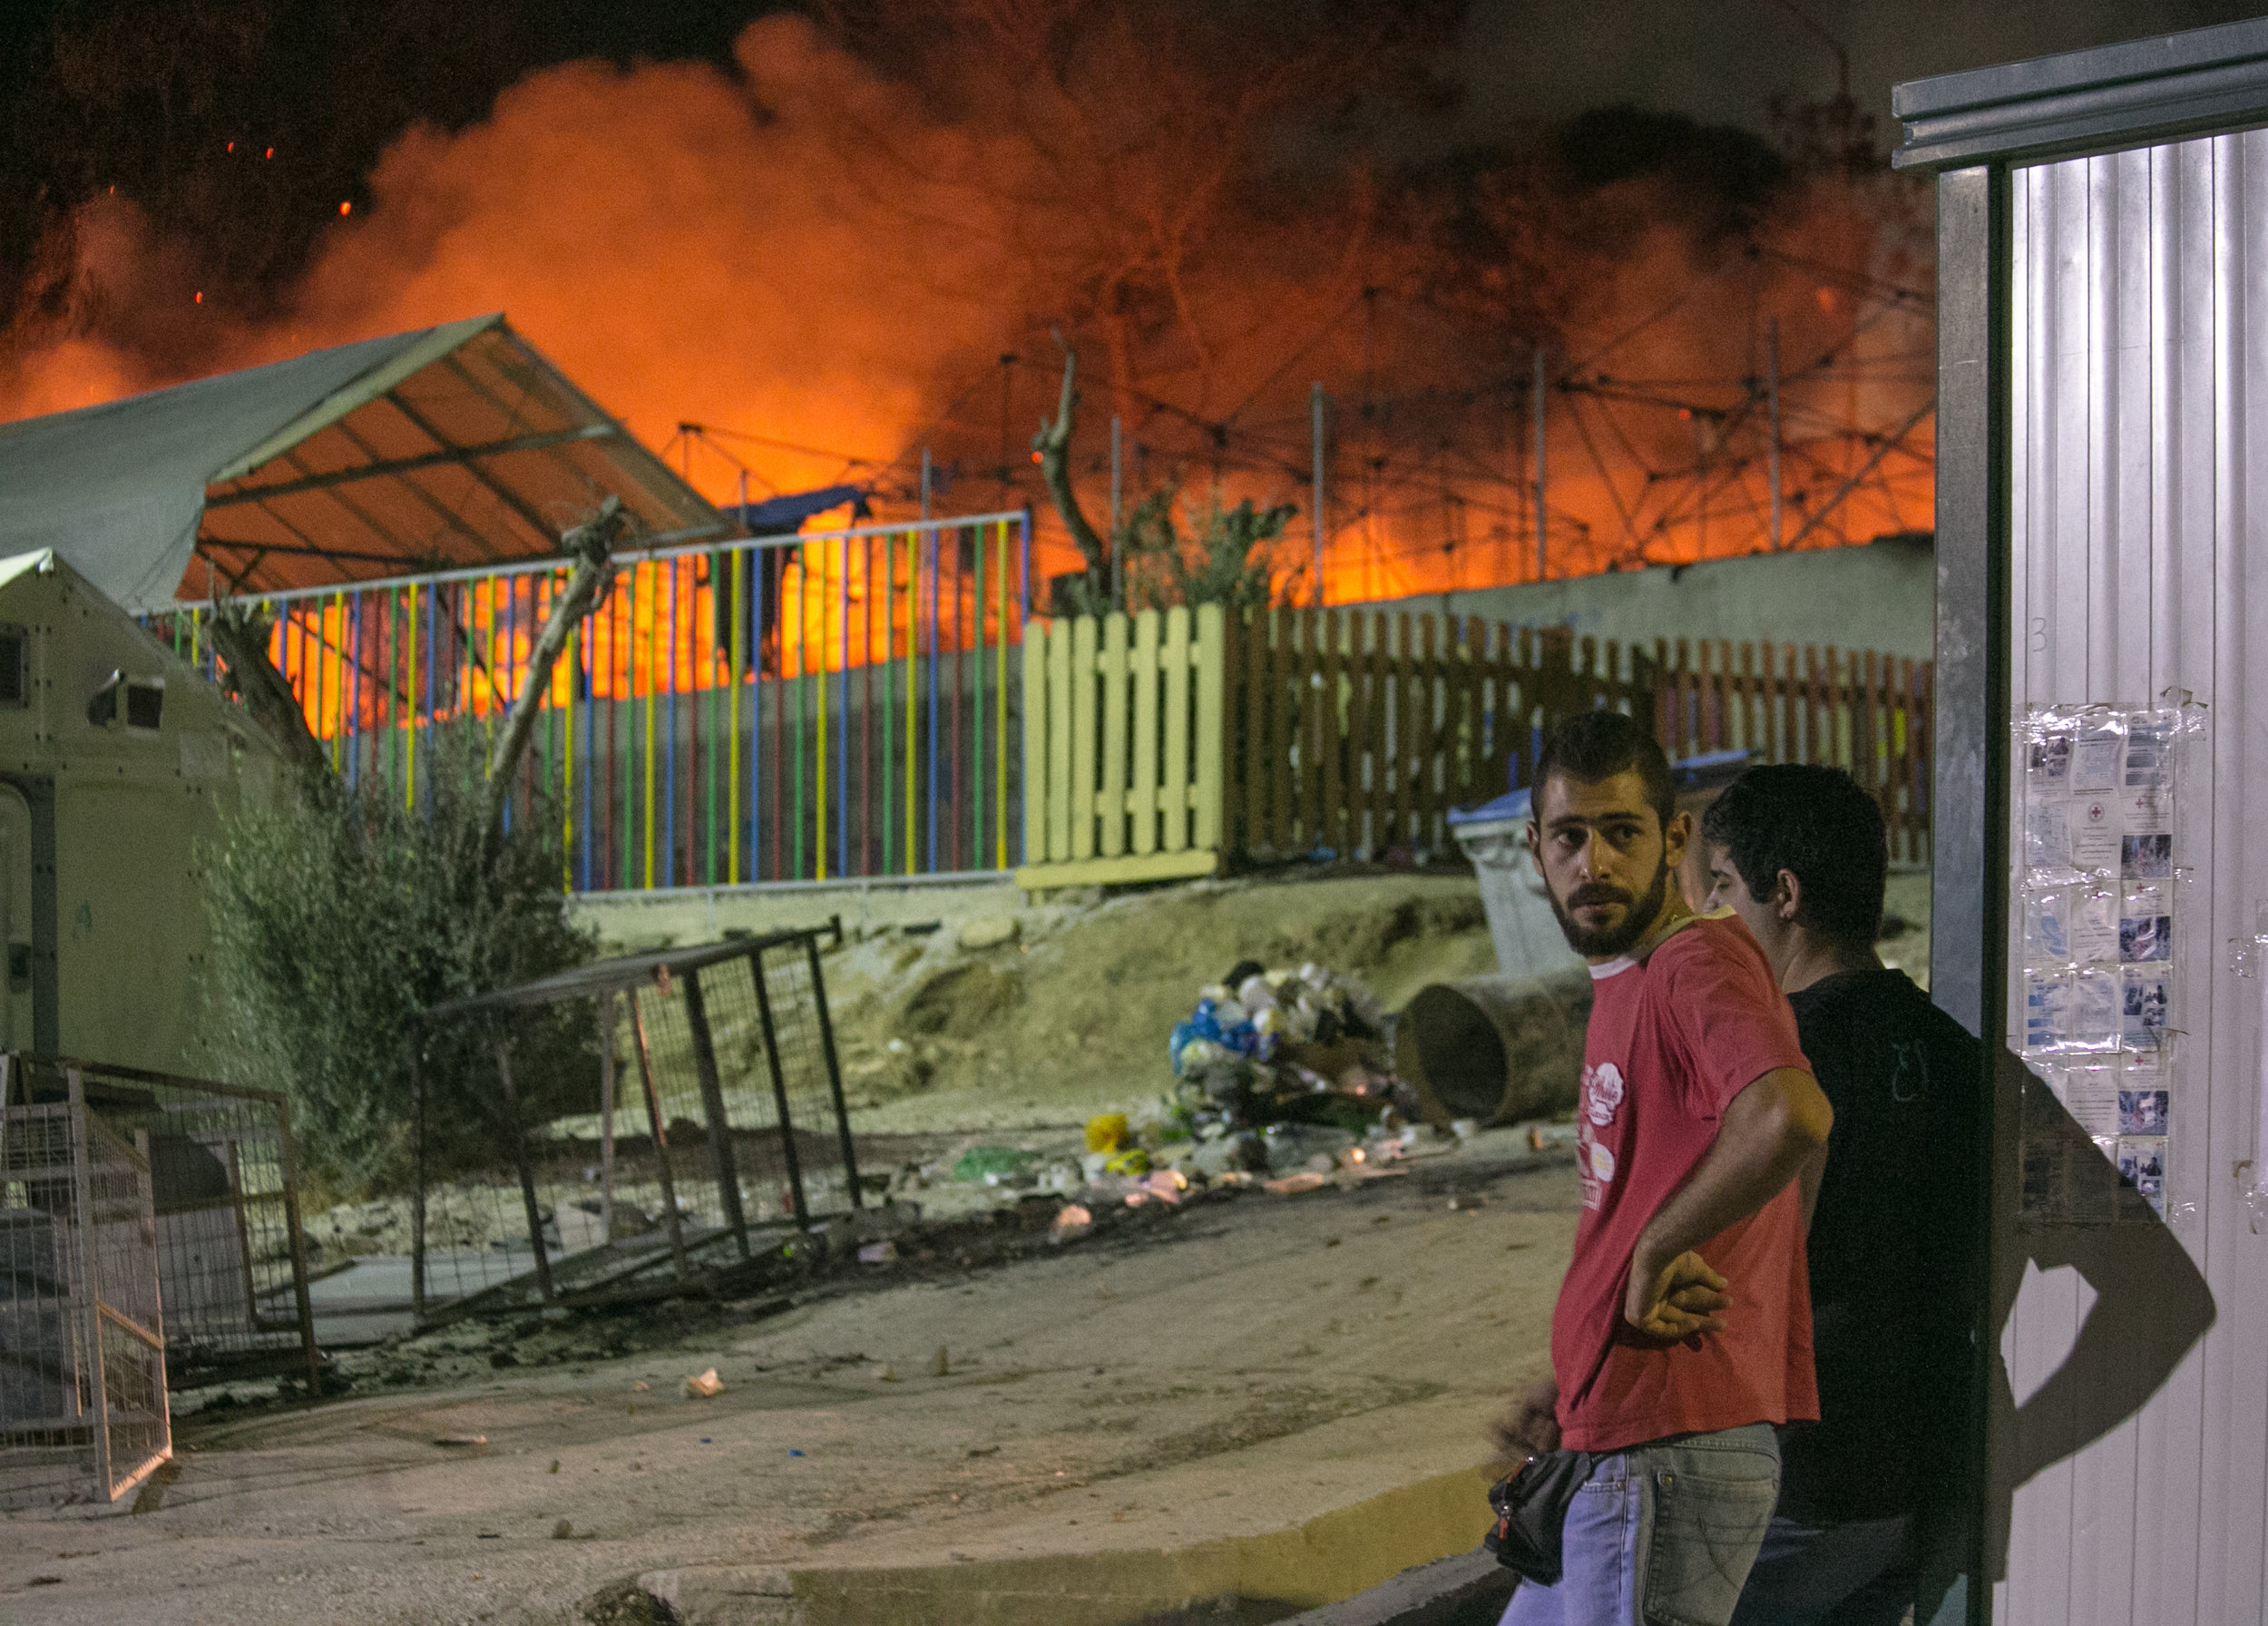 09/19/16 - 9:30pm: Migrants watch on as the Moria refugee camp burns to the ground. ©Mike Schwarz/AP